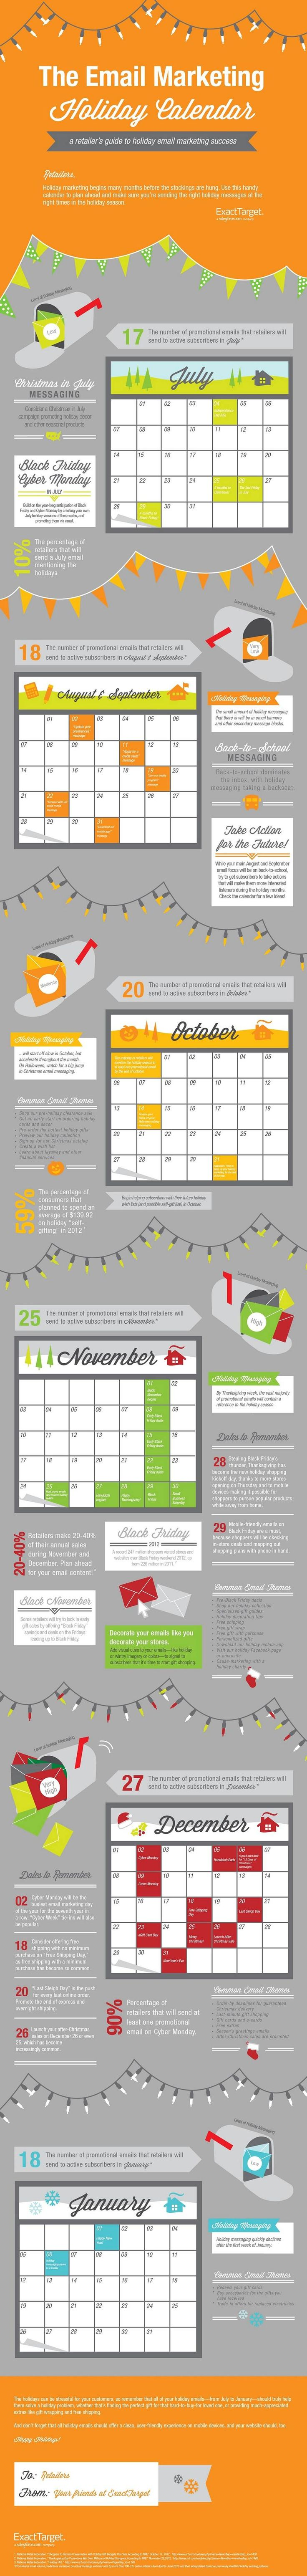 Email Marketing - The Email Marketing Holiday Calendar [Infographic] : MarketingProfs Article